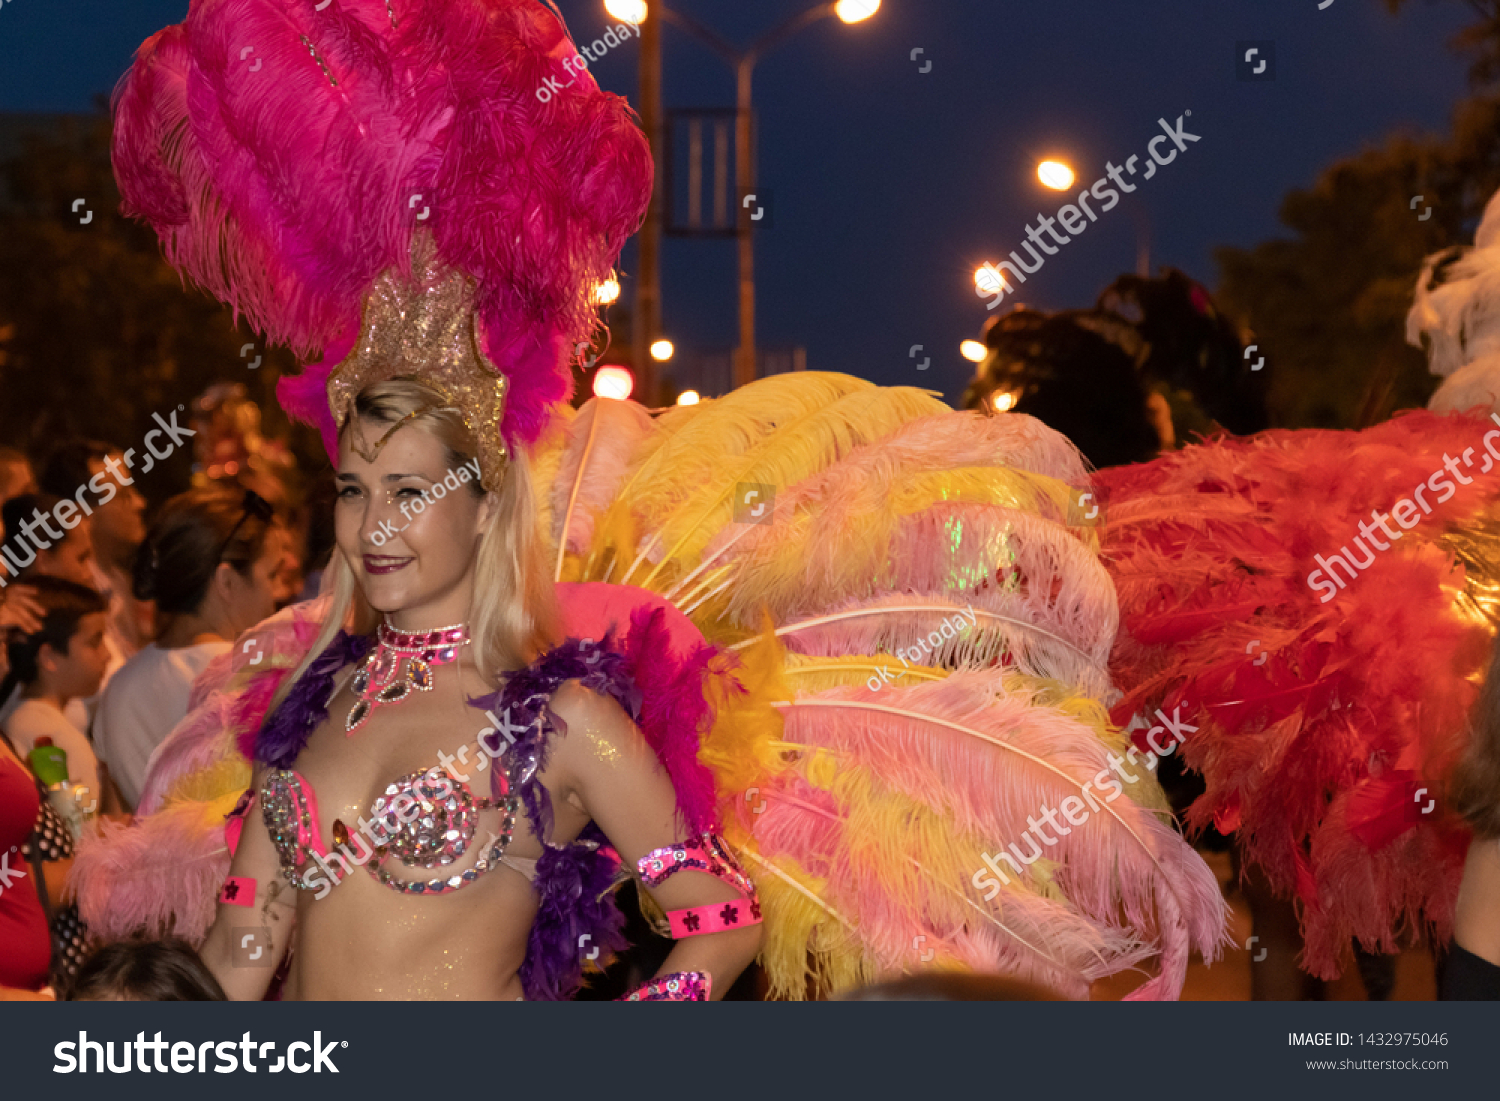 Dancers in costumes of ostrich feathers. Annual summer carnival. Pancevo, Serbia, June 22, 2019